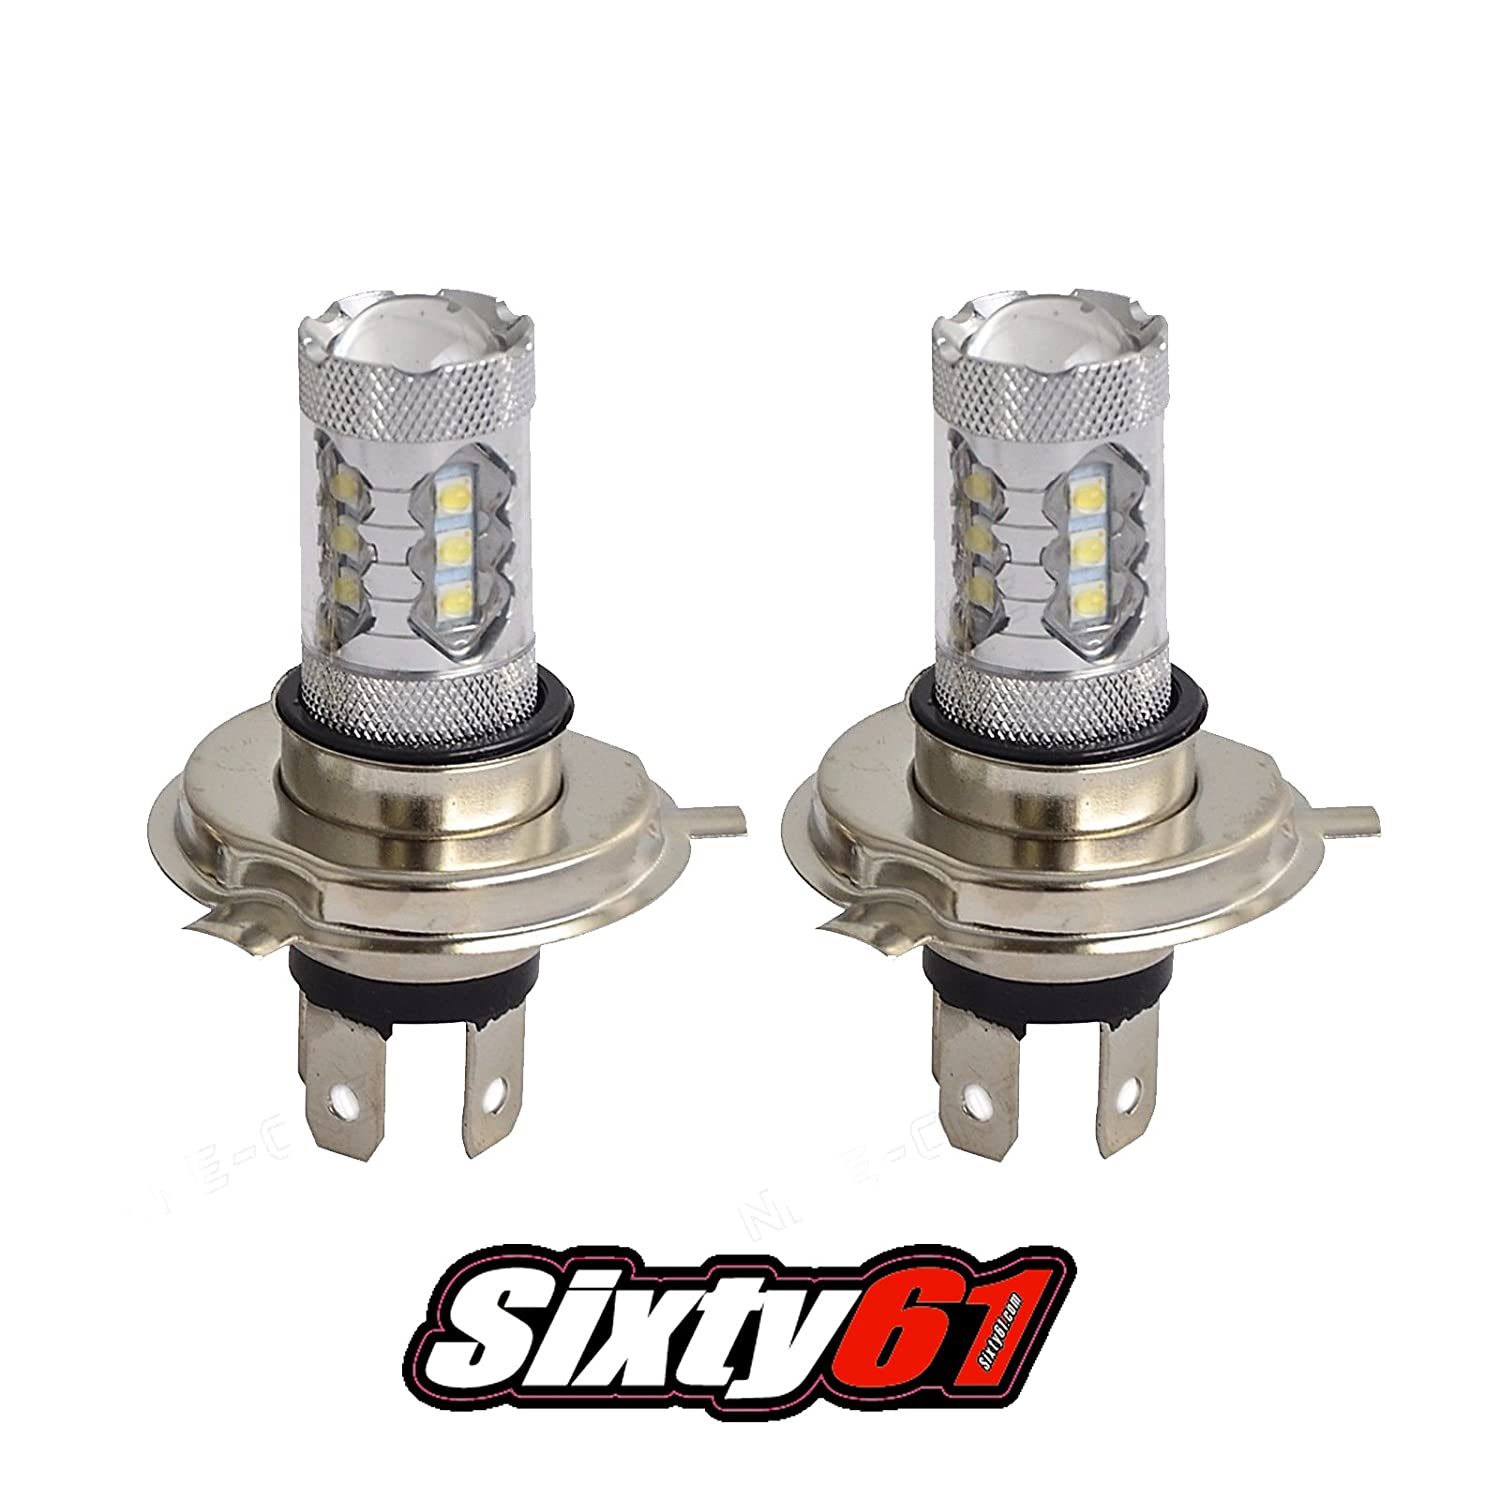 LED Headlight Bulb for Ski-Doo Z583 Z 583 Formula 1997 1998 1999 35W CREE White High Power HID, Skidoo Sixty61